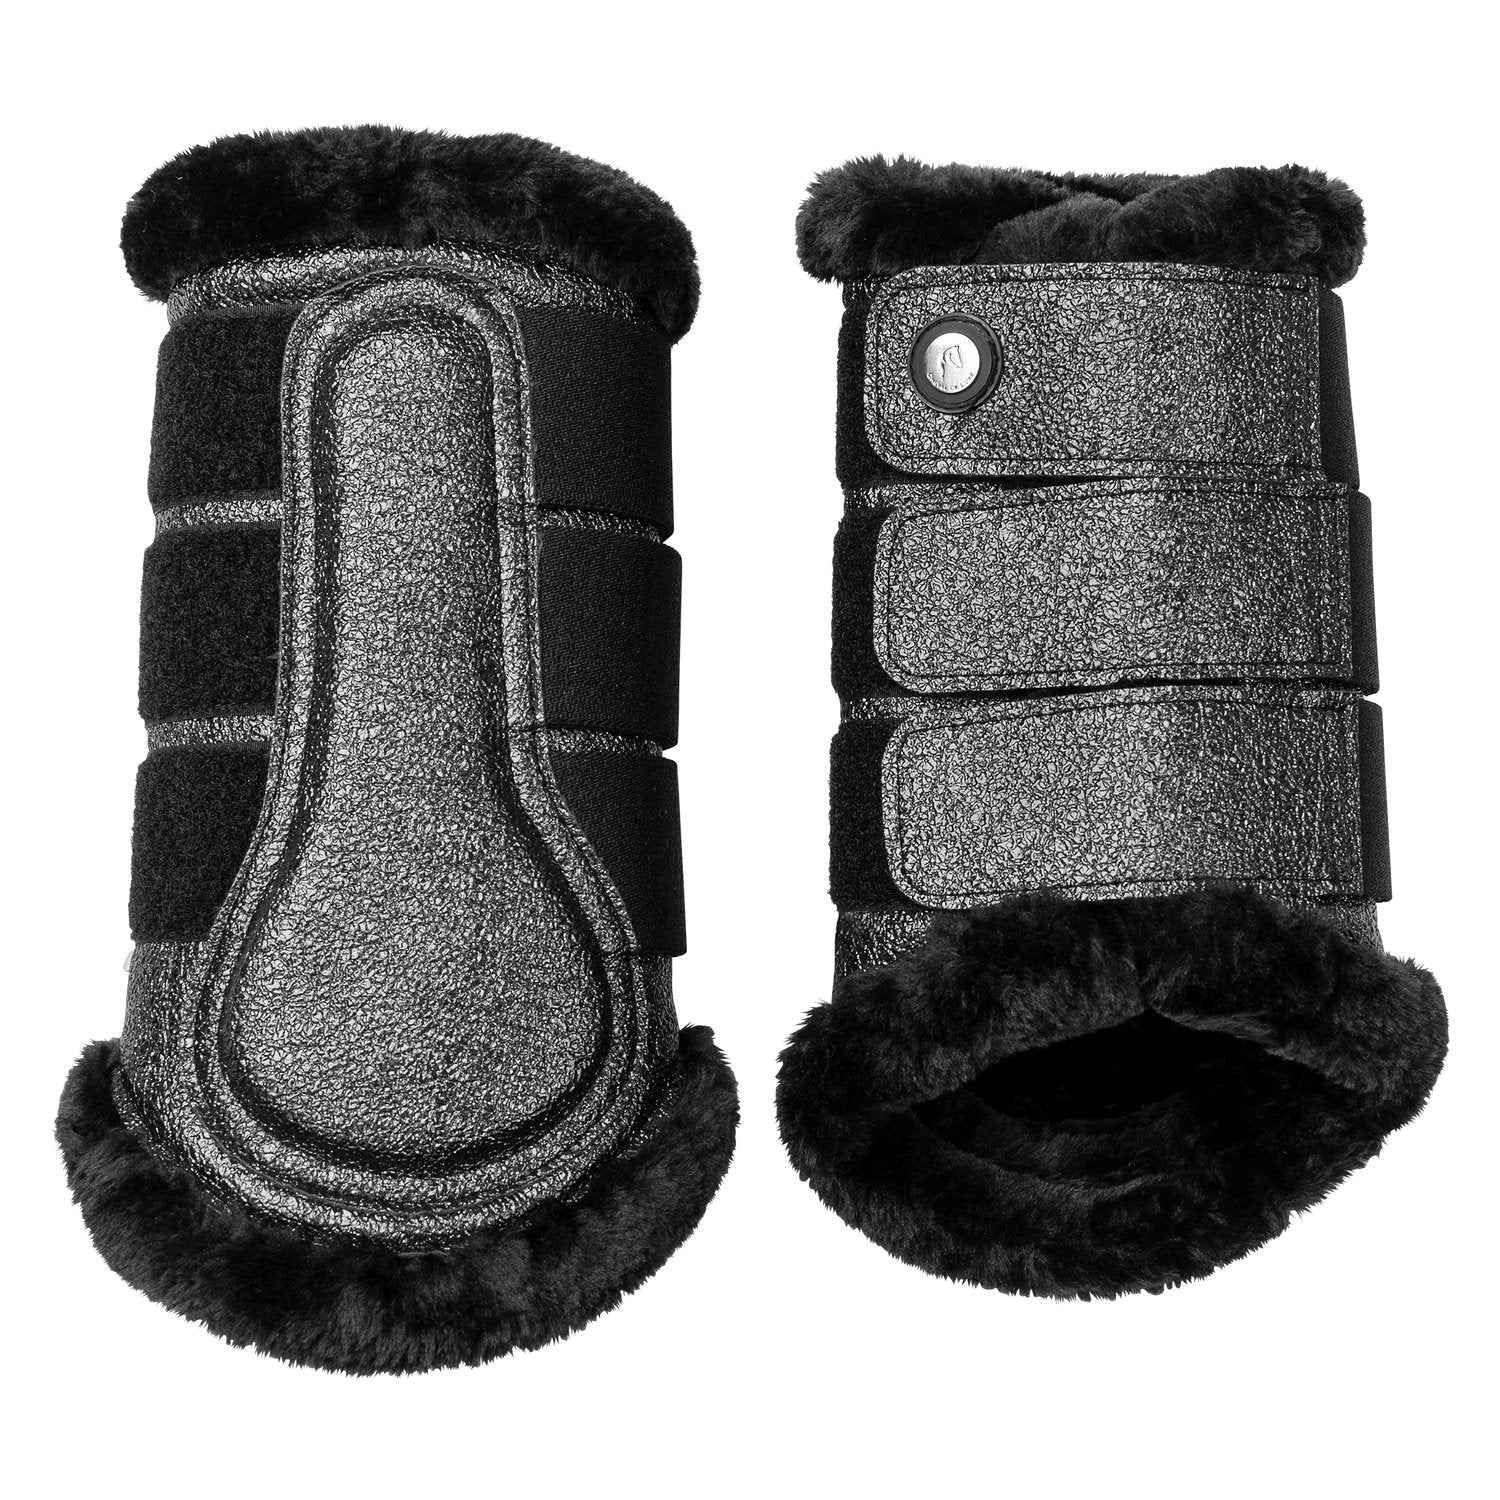 Cheval de Luxe Charcoal Tendon Boots